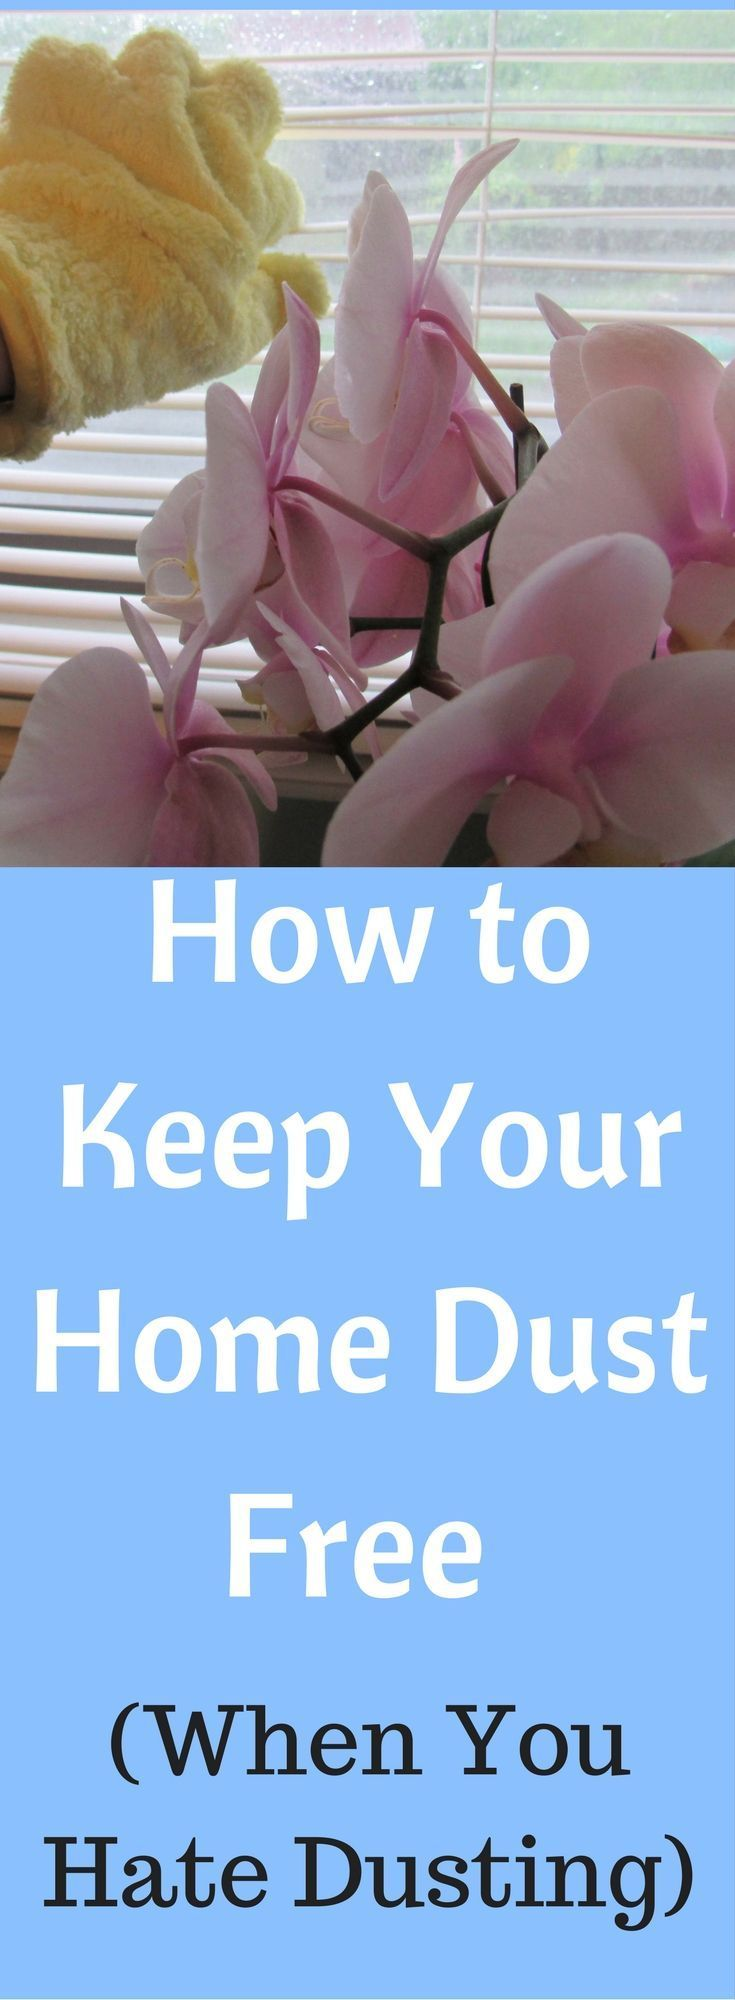 Cleaning Tips | Dusting Tips | How to Keep Your Home Dust Free | Lower Allergens | Allergy Tips | Keep Your Home Clean | Spring Cleaning | Cleaning Routine | How to Clean Your Blinds | AD